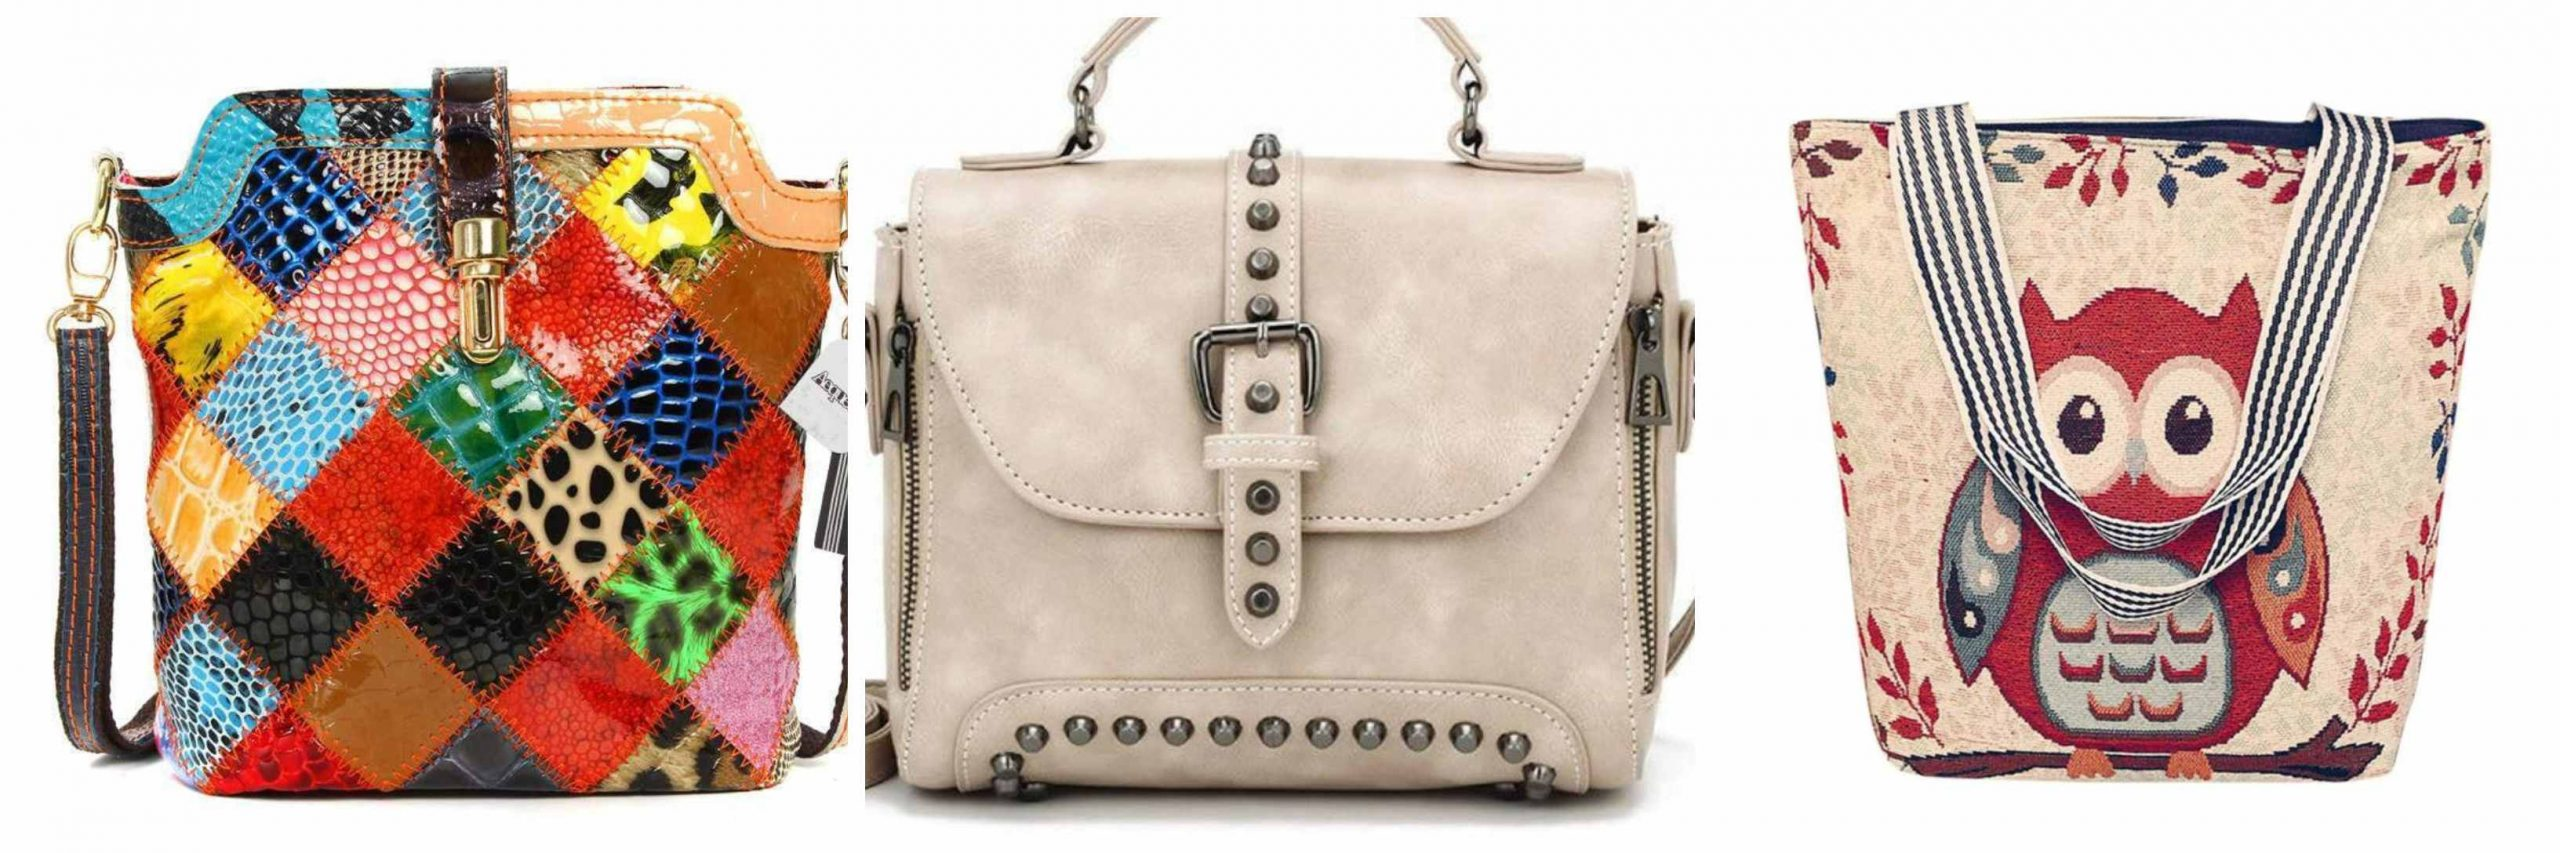 Handbags Trends 2016 Spring/Summer Offers Top notch styles